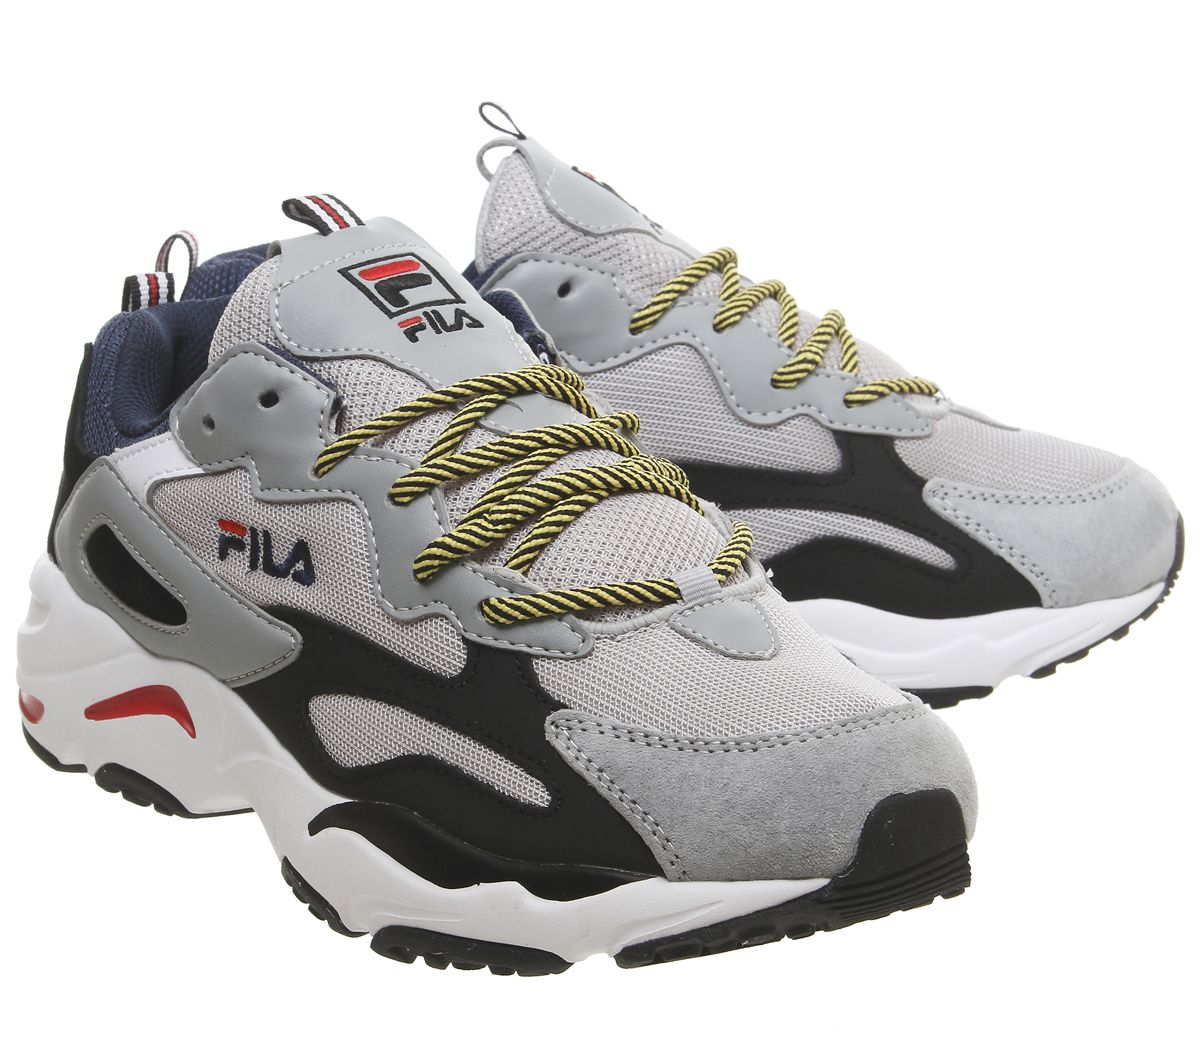 Details about FILA Ray Tracer Sports Shoes Vapor Blue Highrise Black  Sneakers- show original title